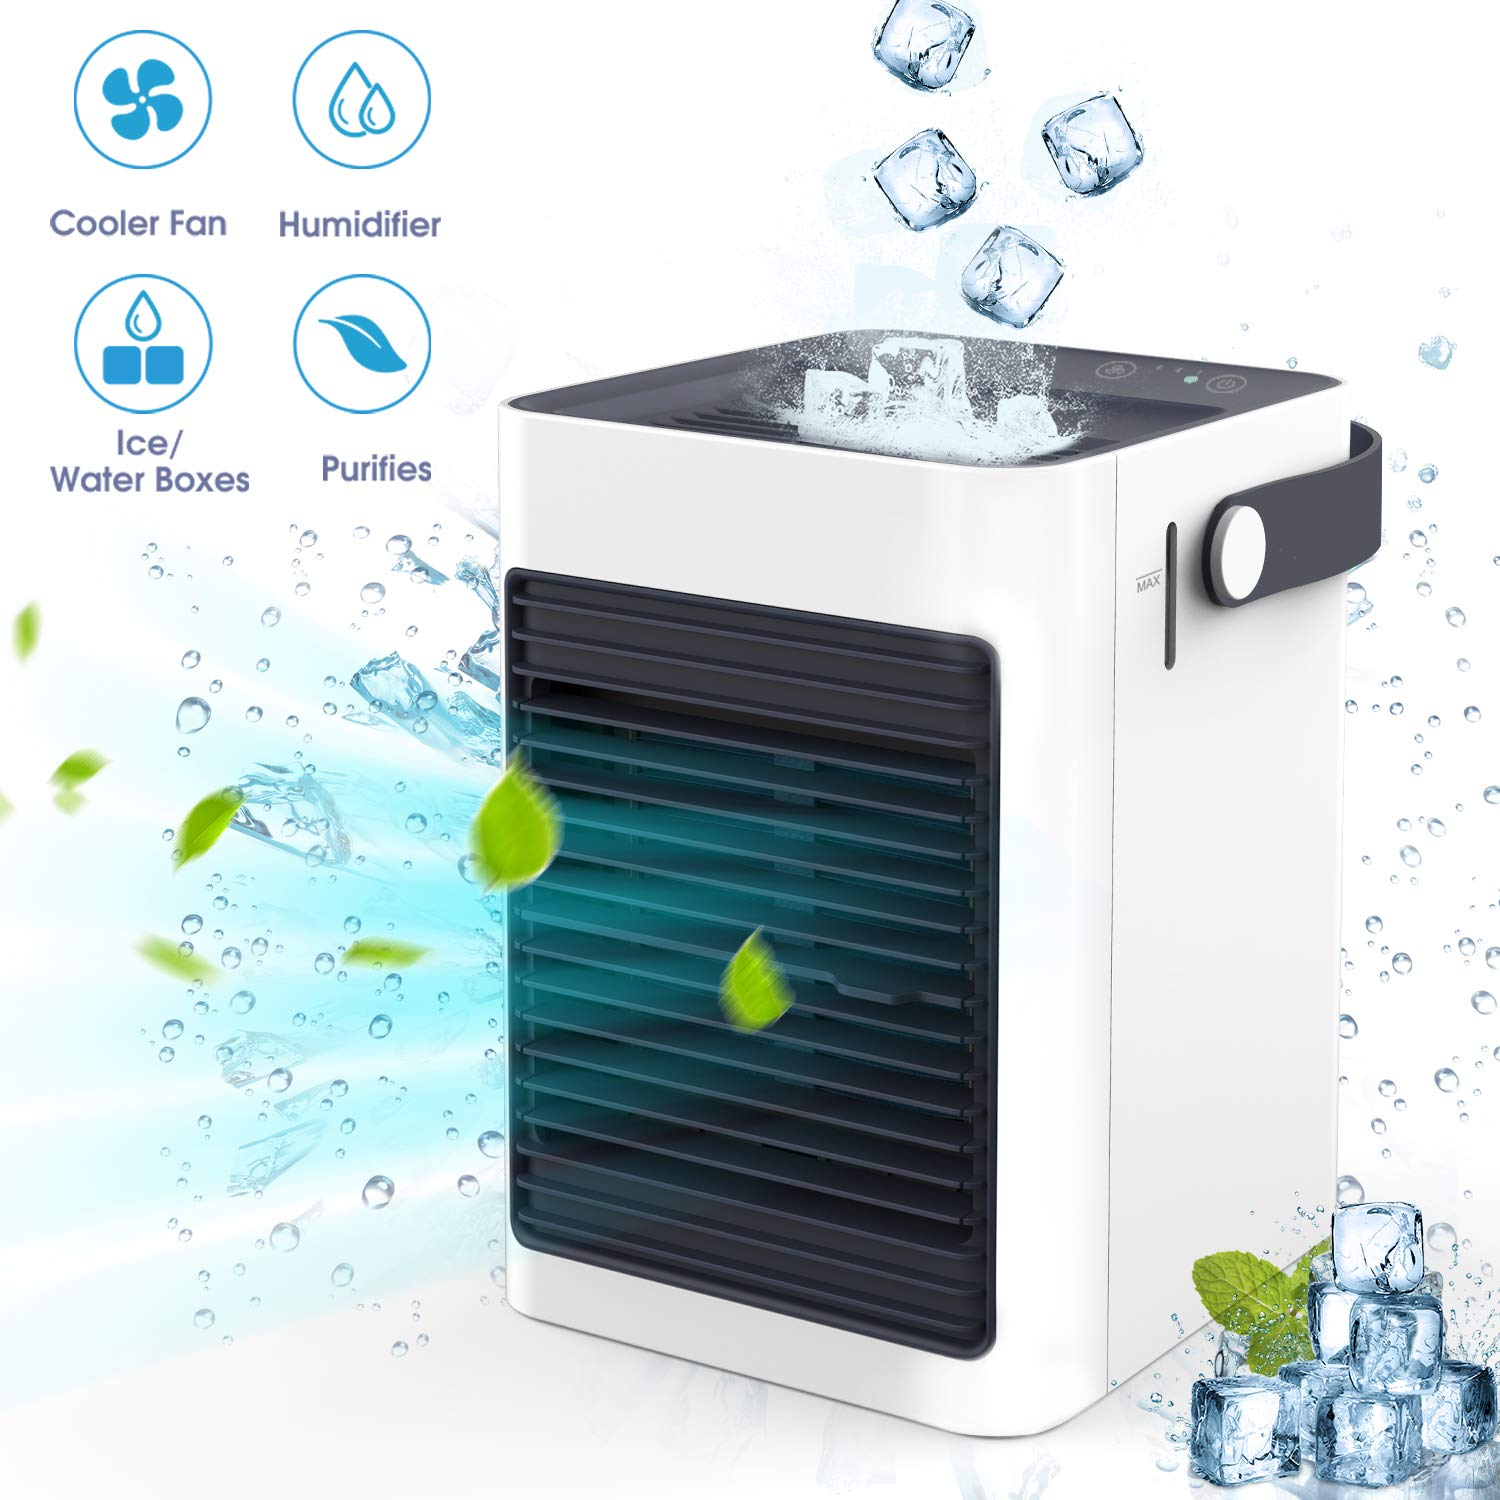 Air Ice Cooler, Air Mini Humidifier & Purifier, Portable Air Evaporative Cooler, Air Conditioner Fan Noiseless, USB Personal Space Air Cooler Quiet for Home, Bedroom Office, Desktop, RV, Outdoors